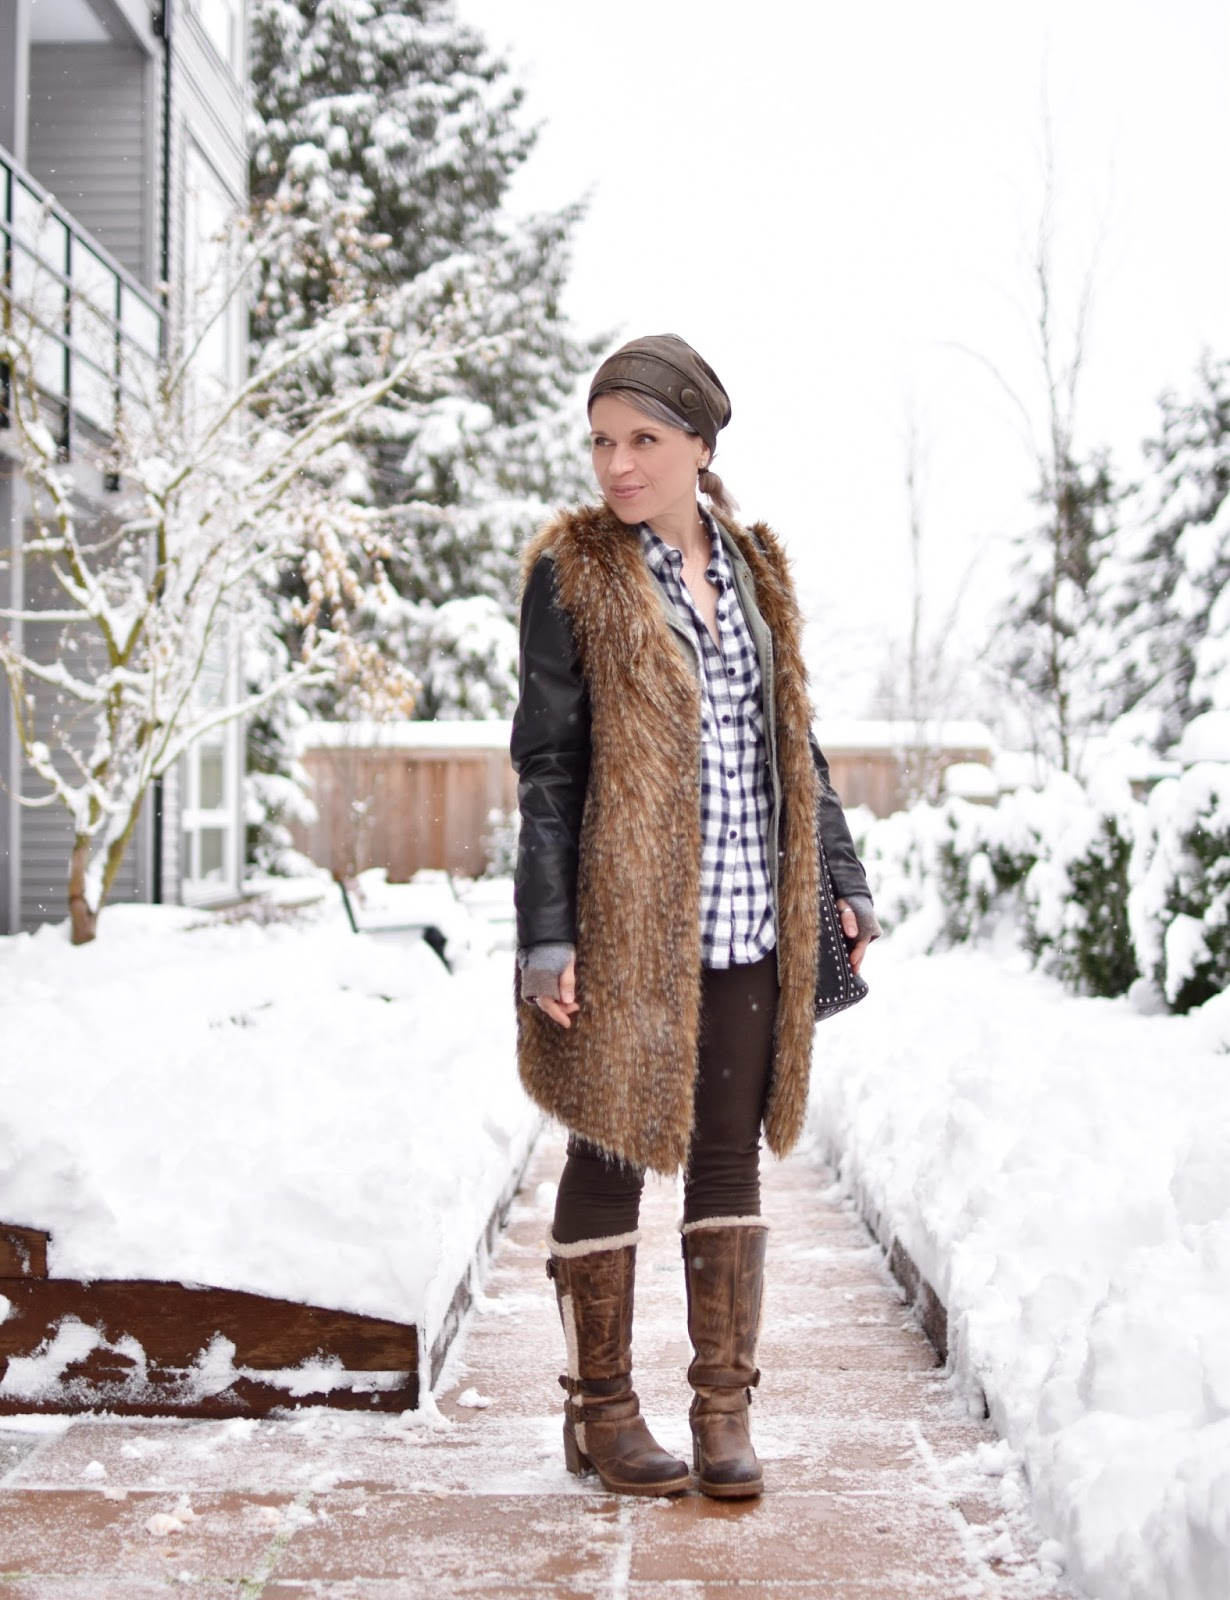 Monika Faulkner outfit inspiration - styling a military parka with a plaid shirt, long faux-fur vest, leggings, fleece-trimmed boots, and leather beanie